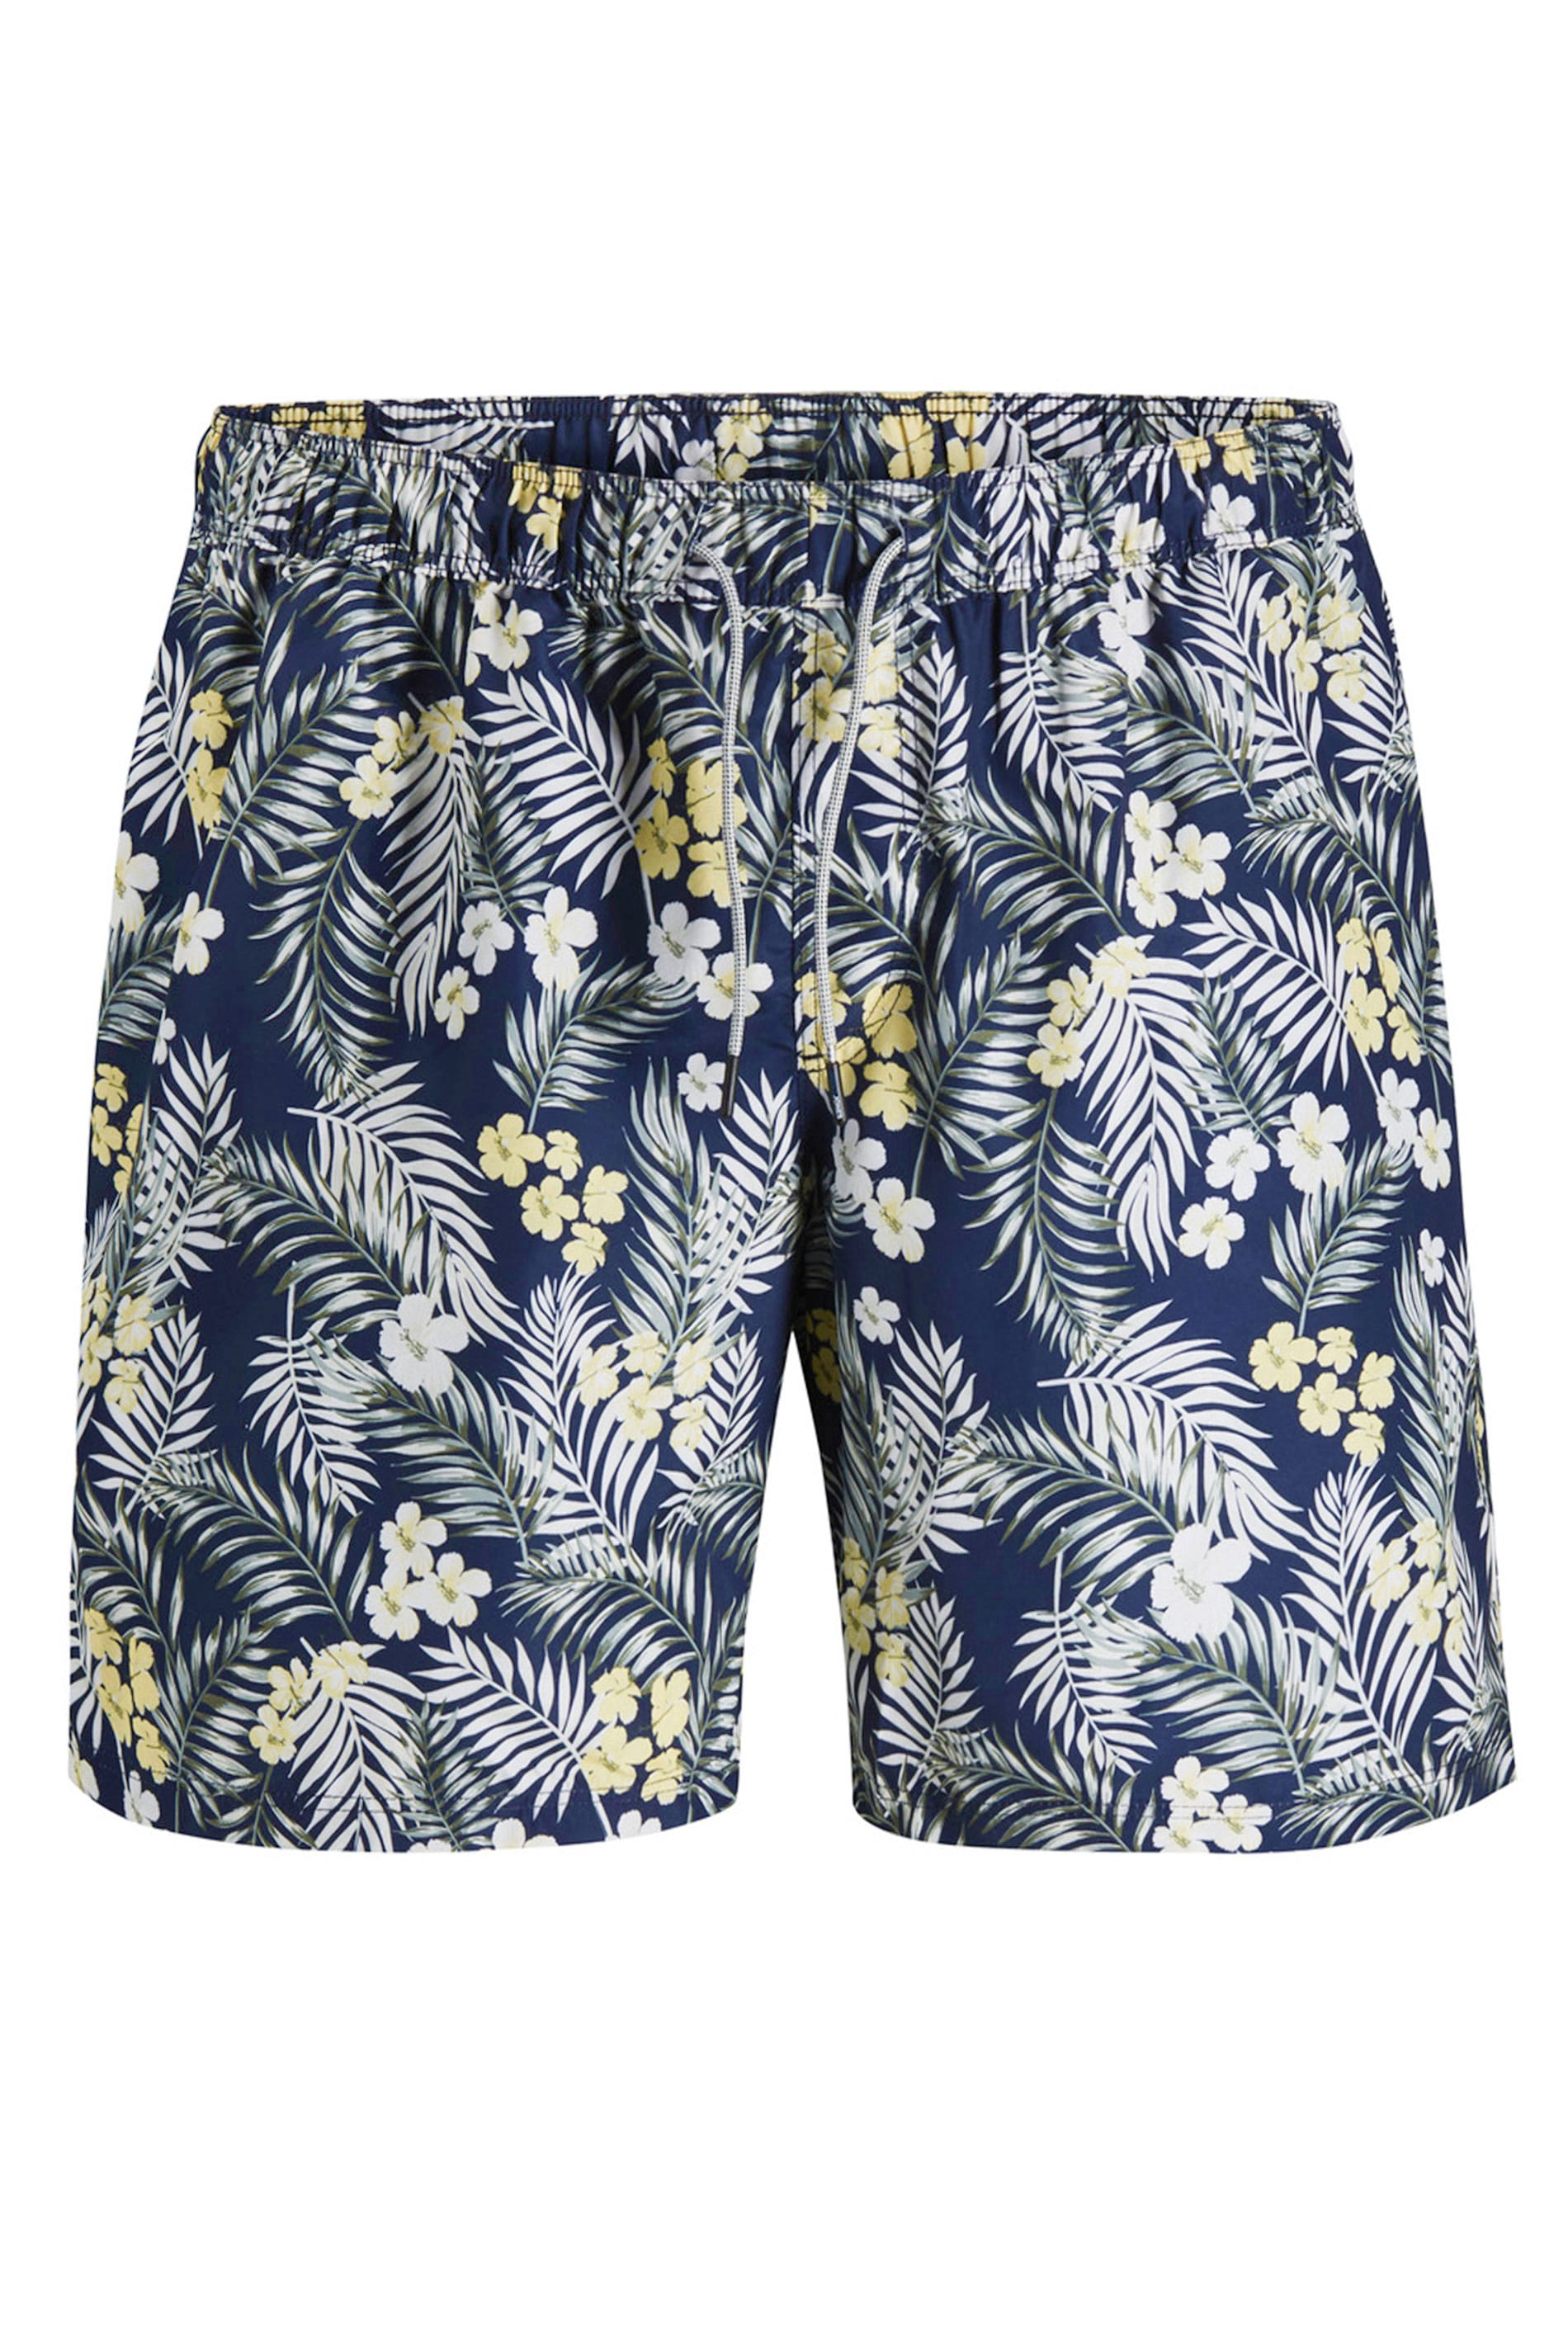 JACK & JONES Navy Tropical Print Swim Shorts